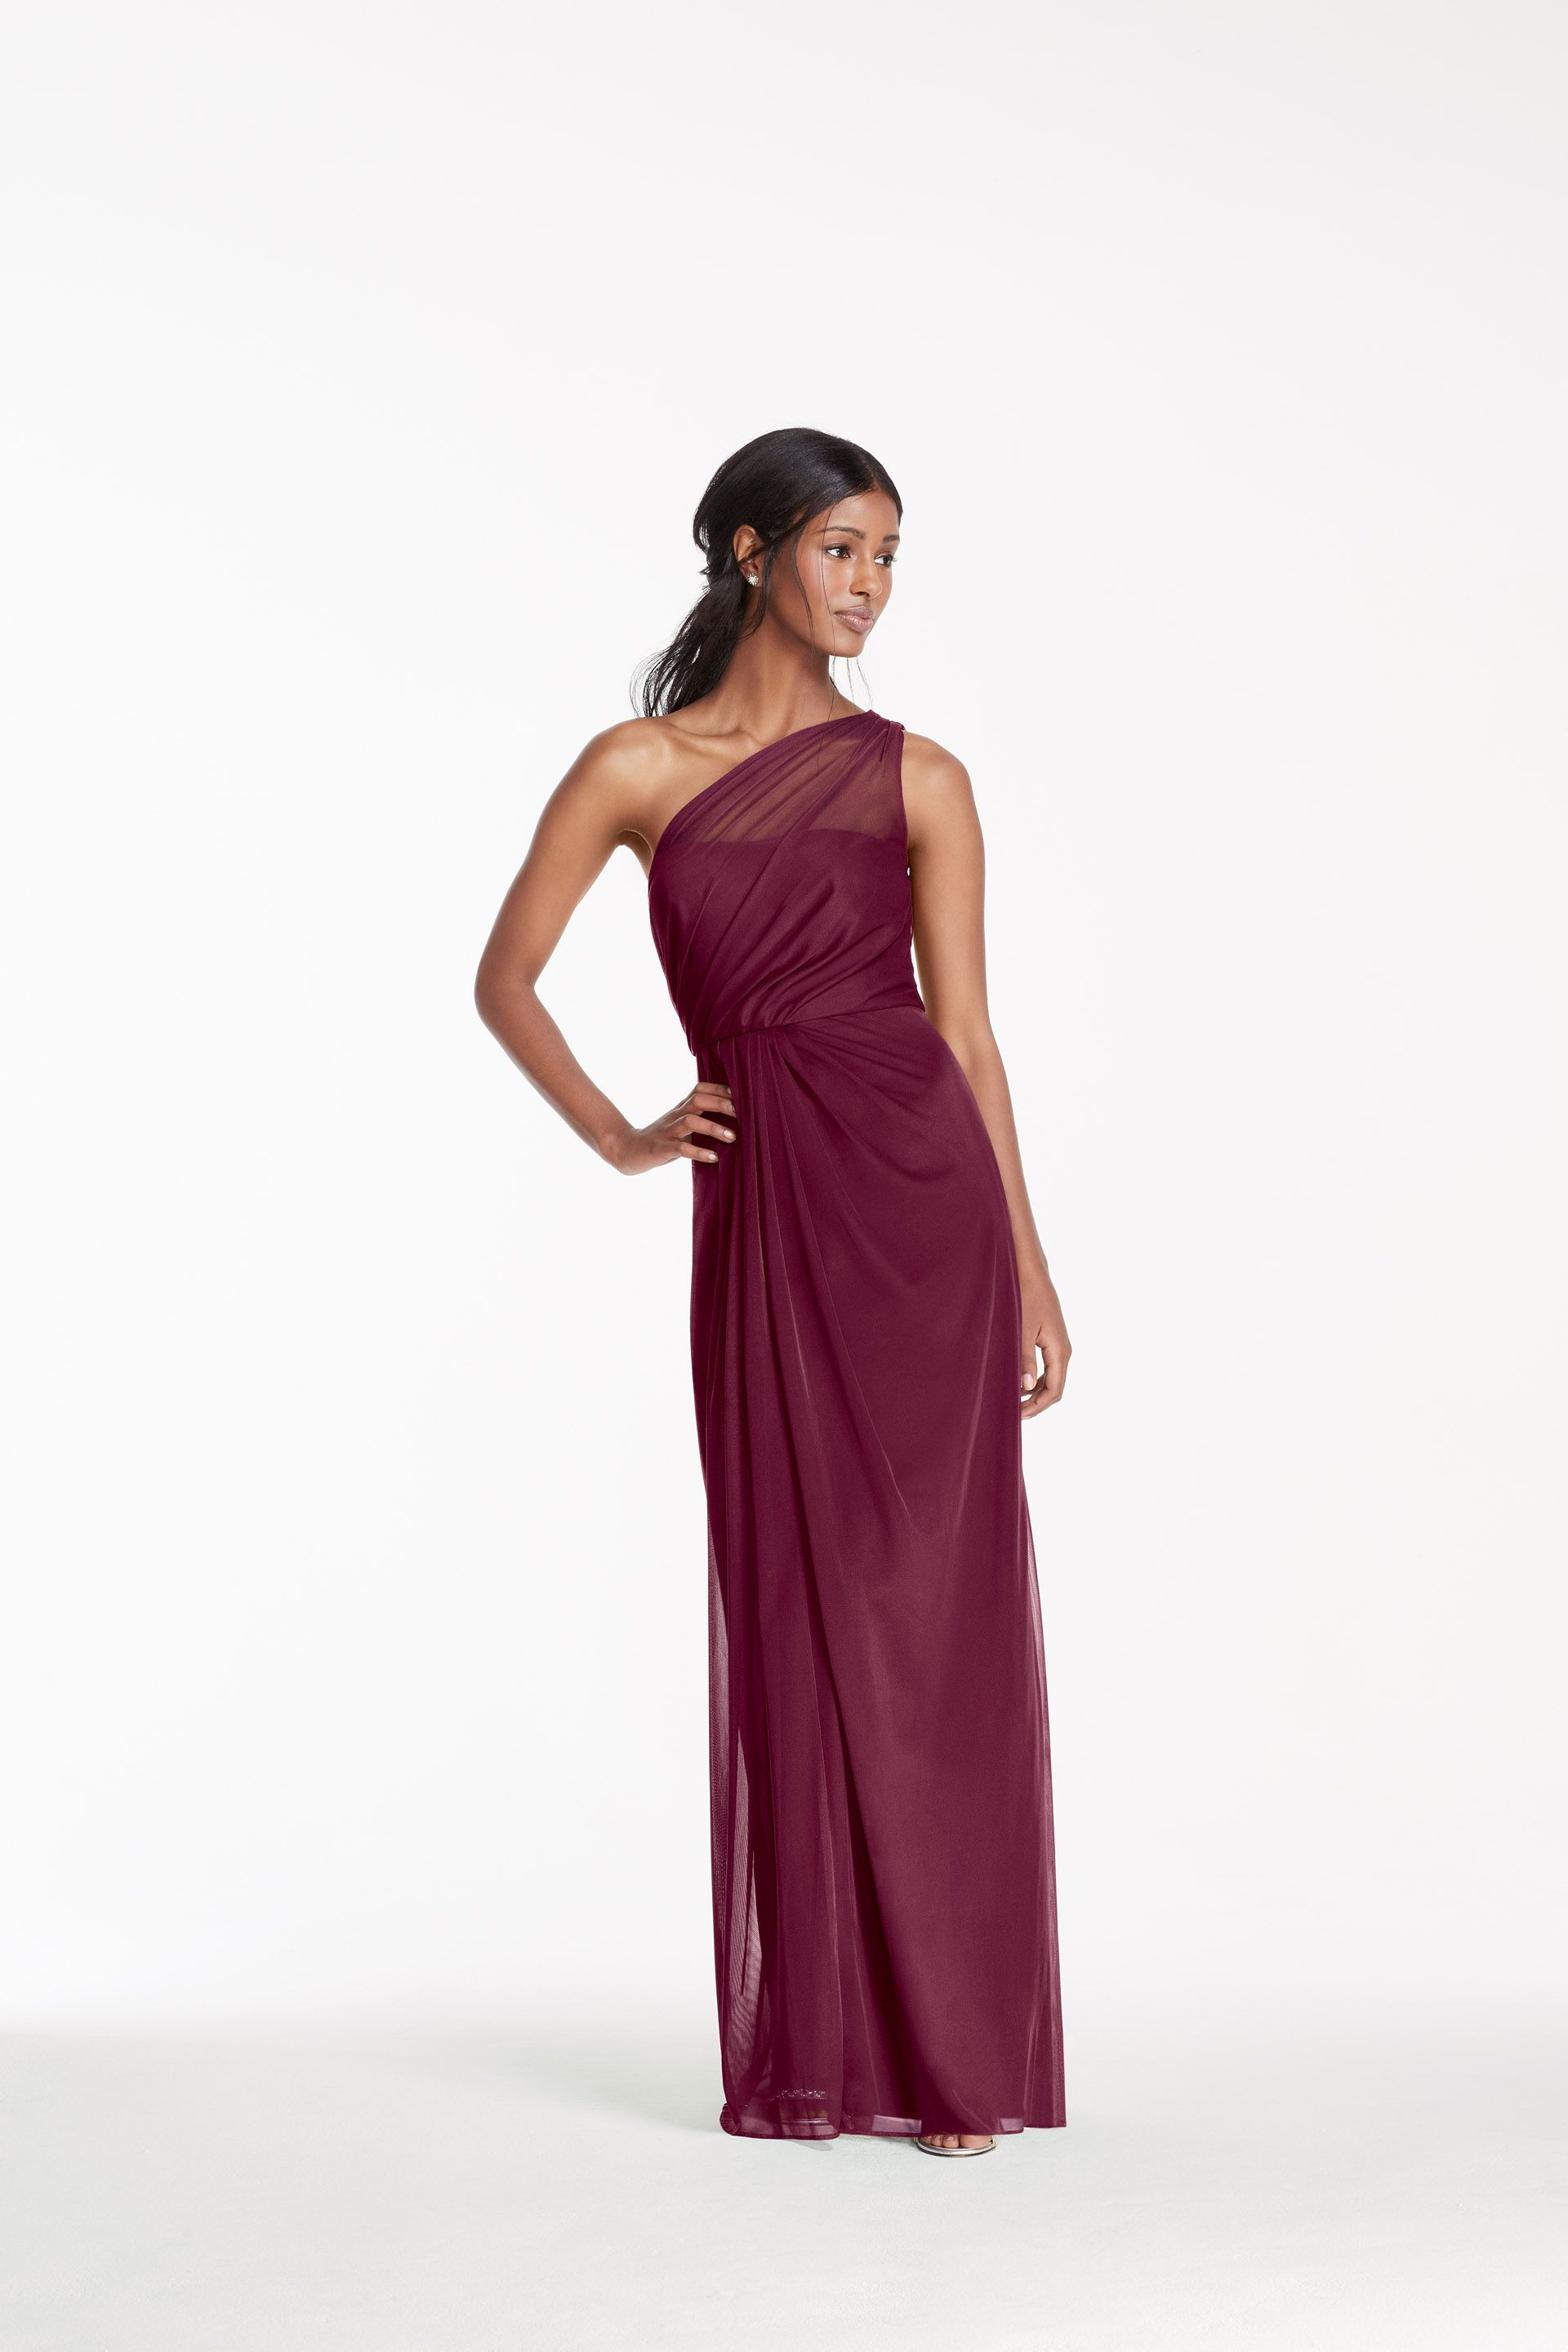 49f2045ddb2fd Long Wine Mesh One Shoulder Illusion Neckline Bridesmaid Dress by David s  Bridal